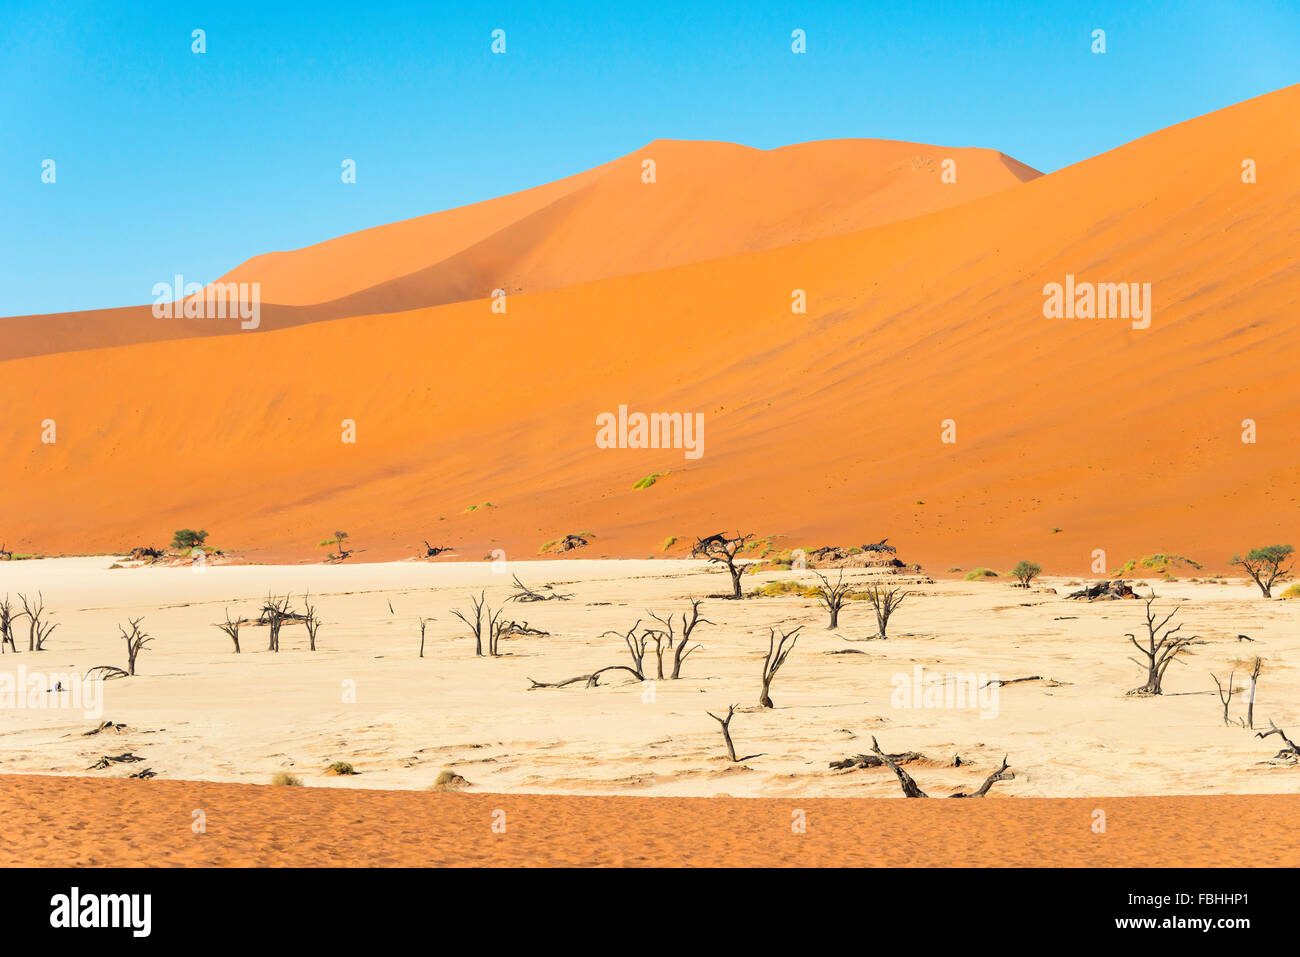 The Dead Viei (DeadVlei) Pan, Namib-Naukluft National Park, Sossusviei, Namib Desert, Hardap Region, Republic of - Stock Image